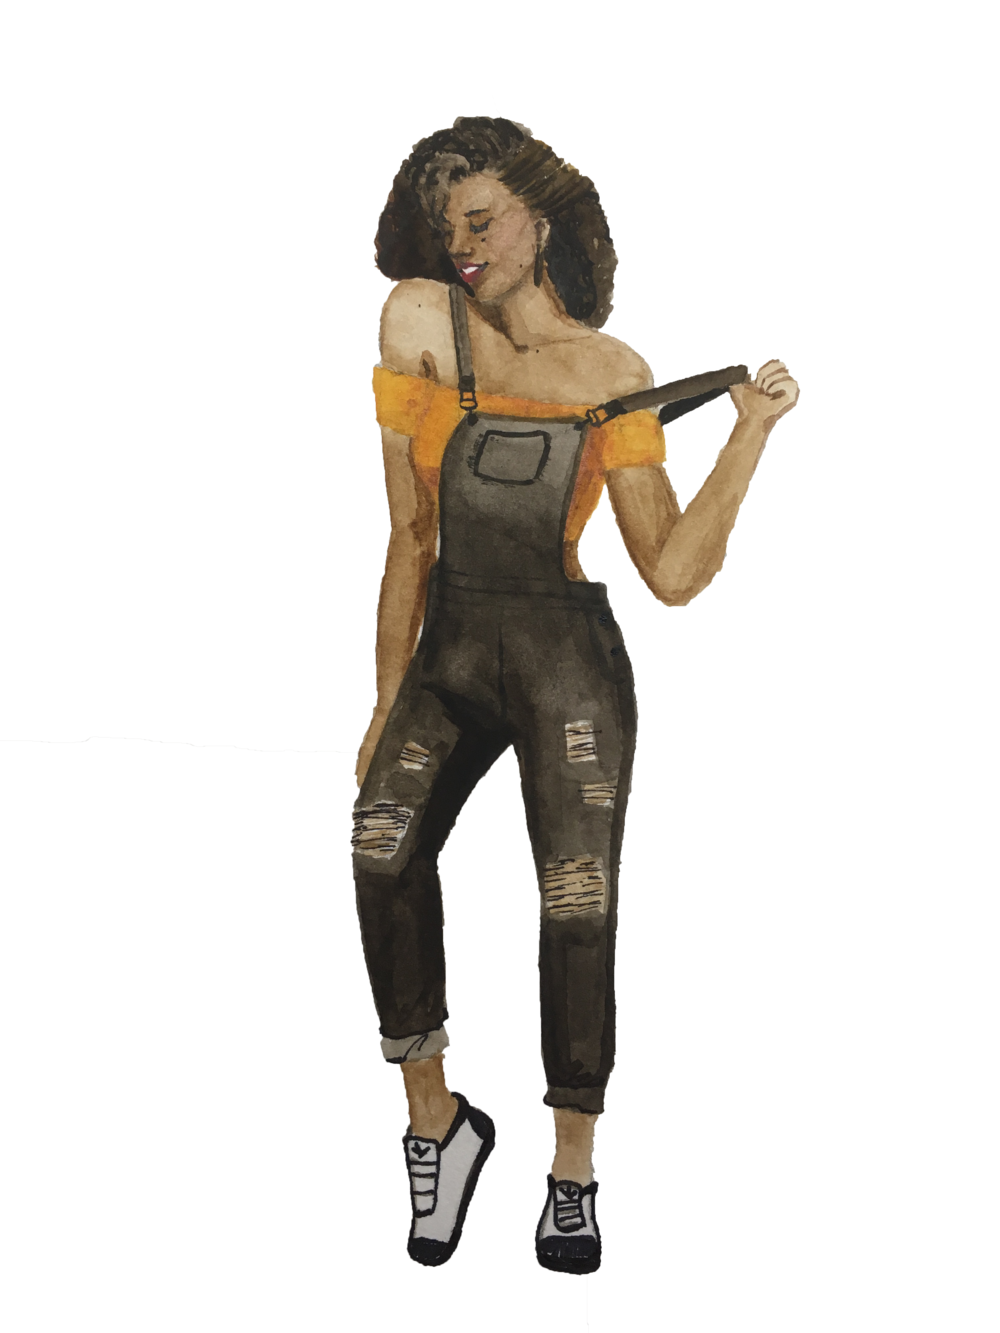 Outfit Ideas for Overalls